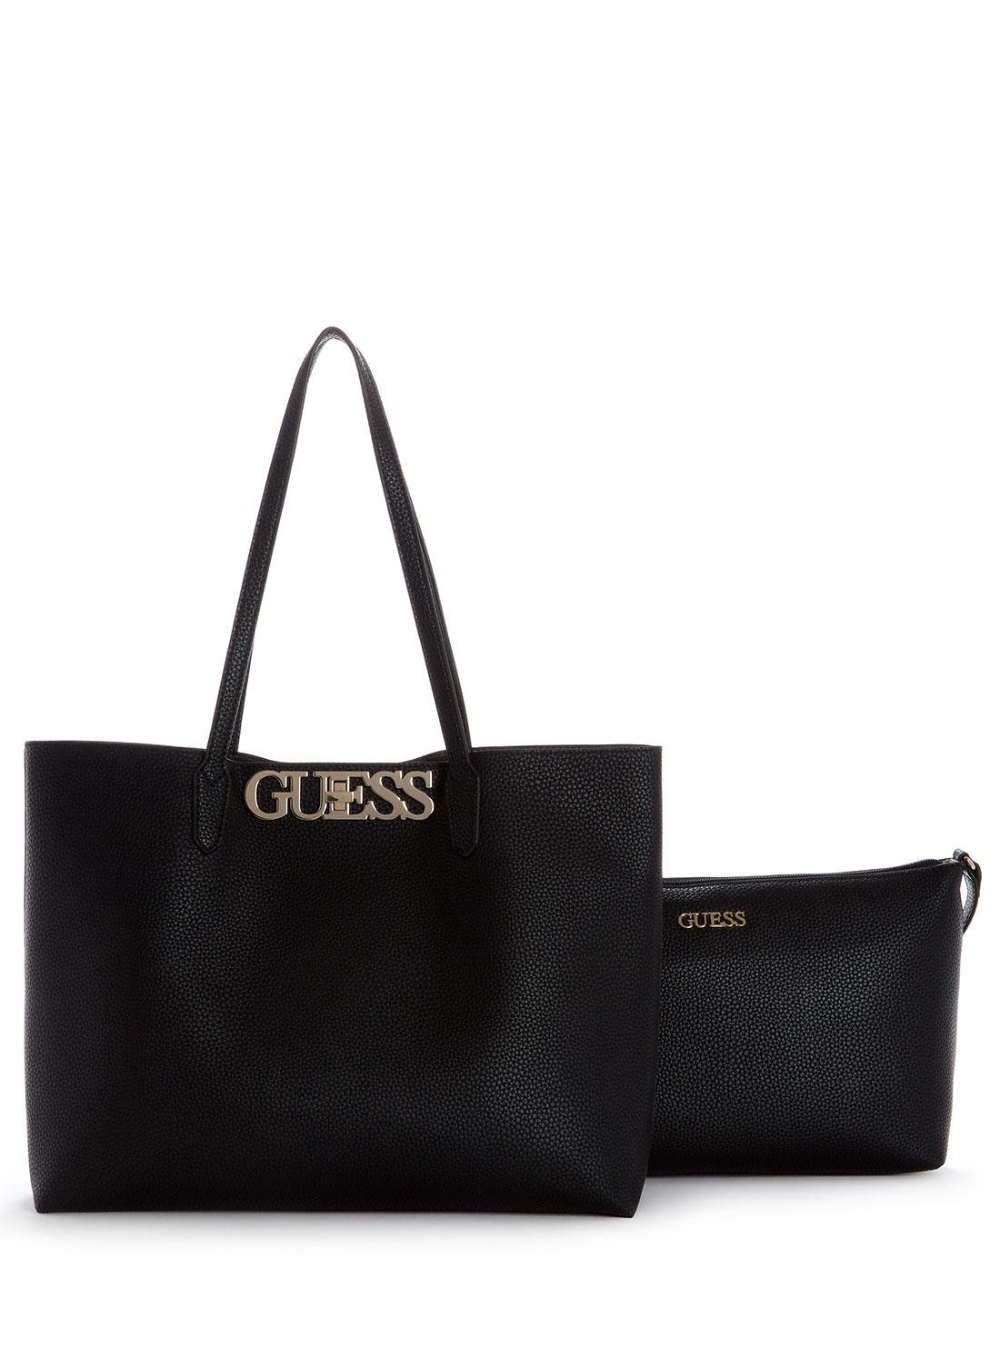 GUESS Baldwin park mini cross body bag, Women's Fashion